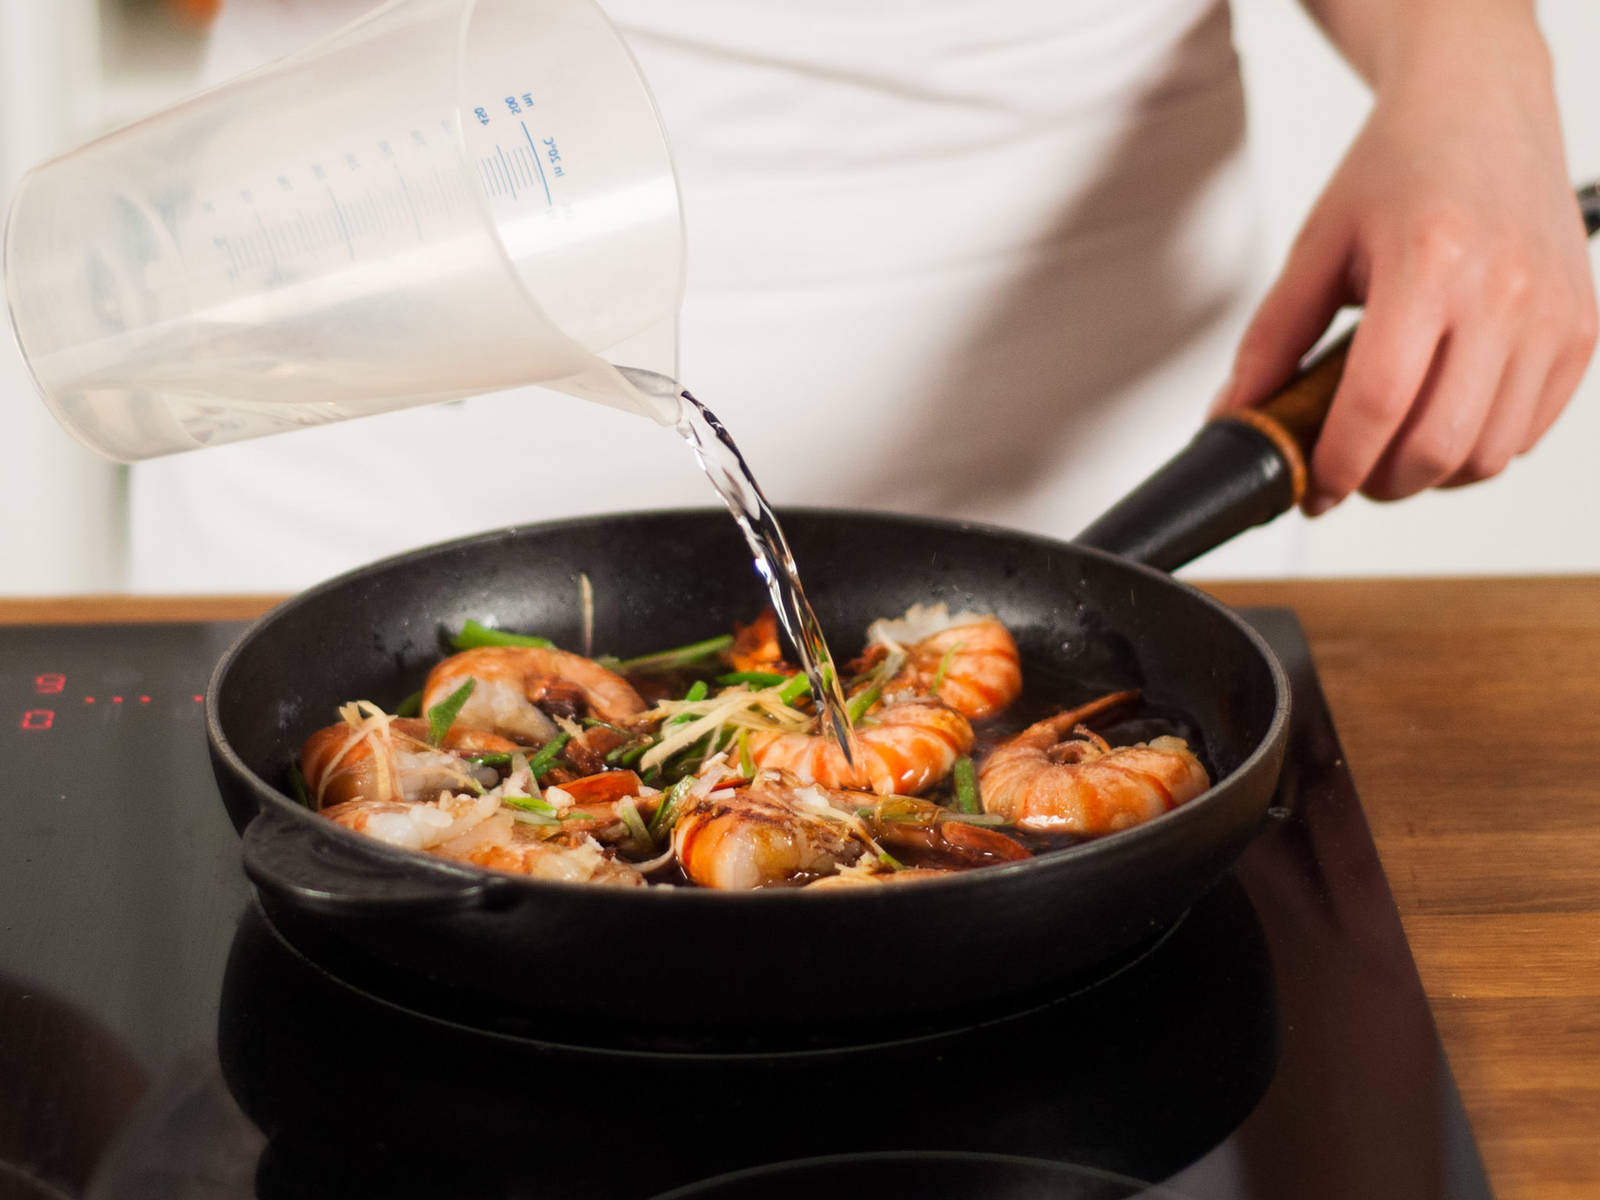 Add parts of the water. Bring to a simmer, cover, and allow to cook on low-medium heat for approx. 3 – 4 min.